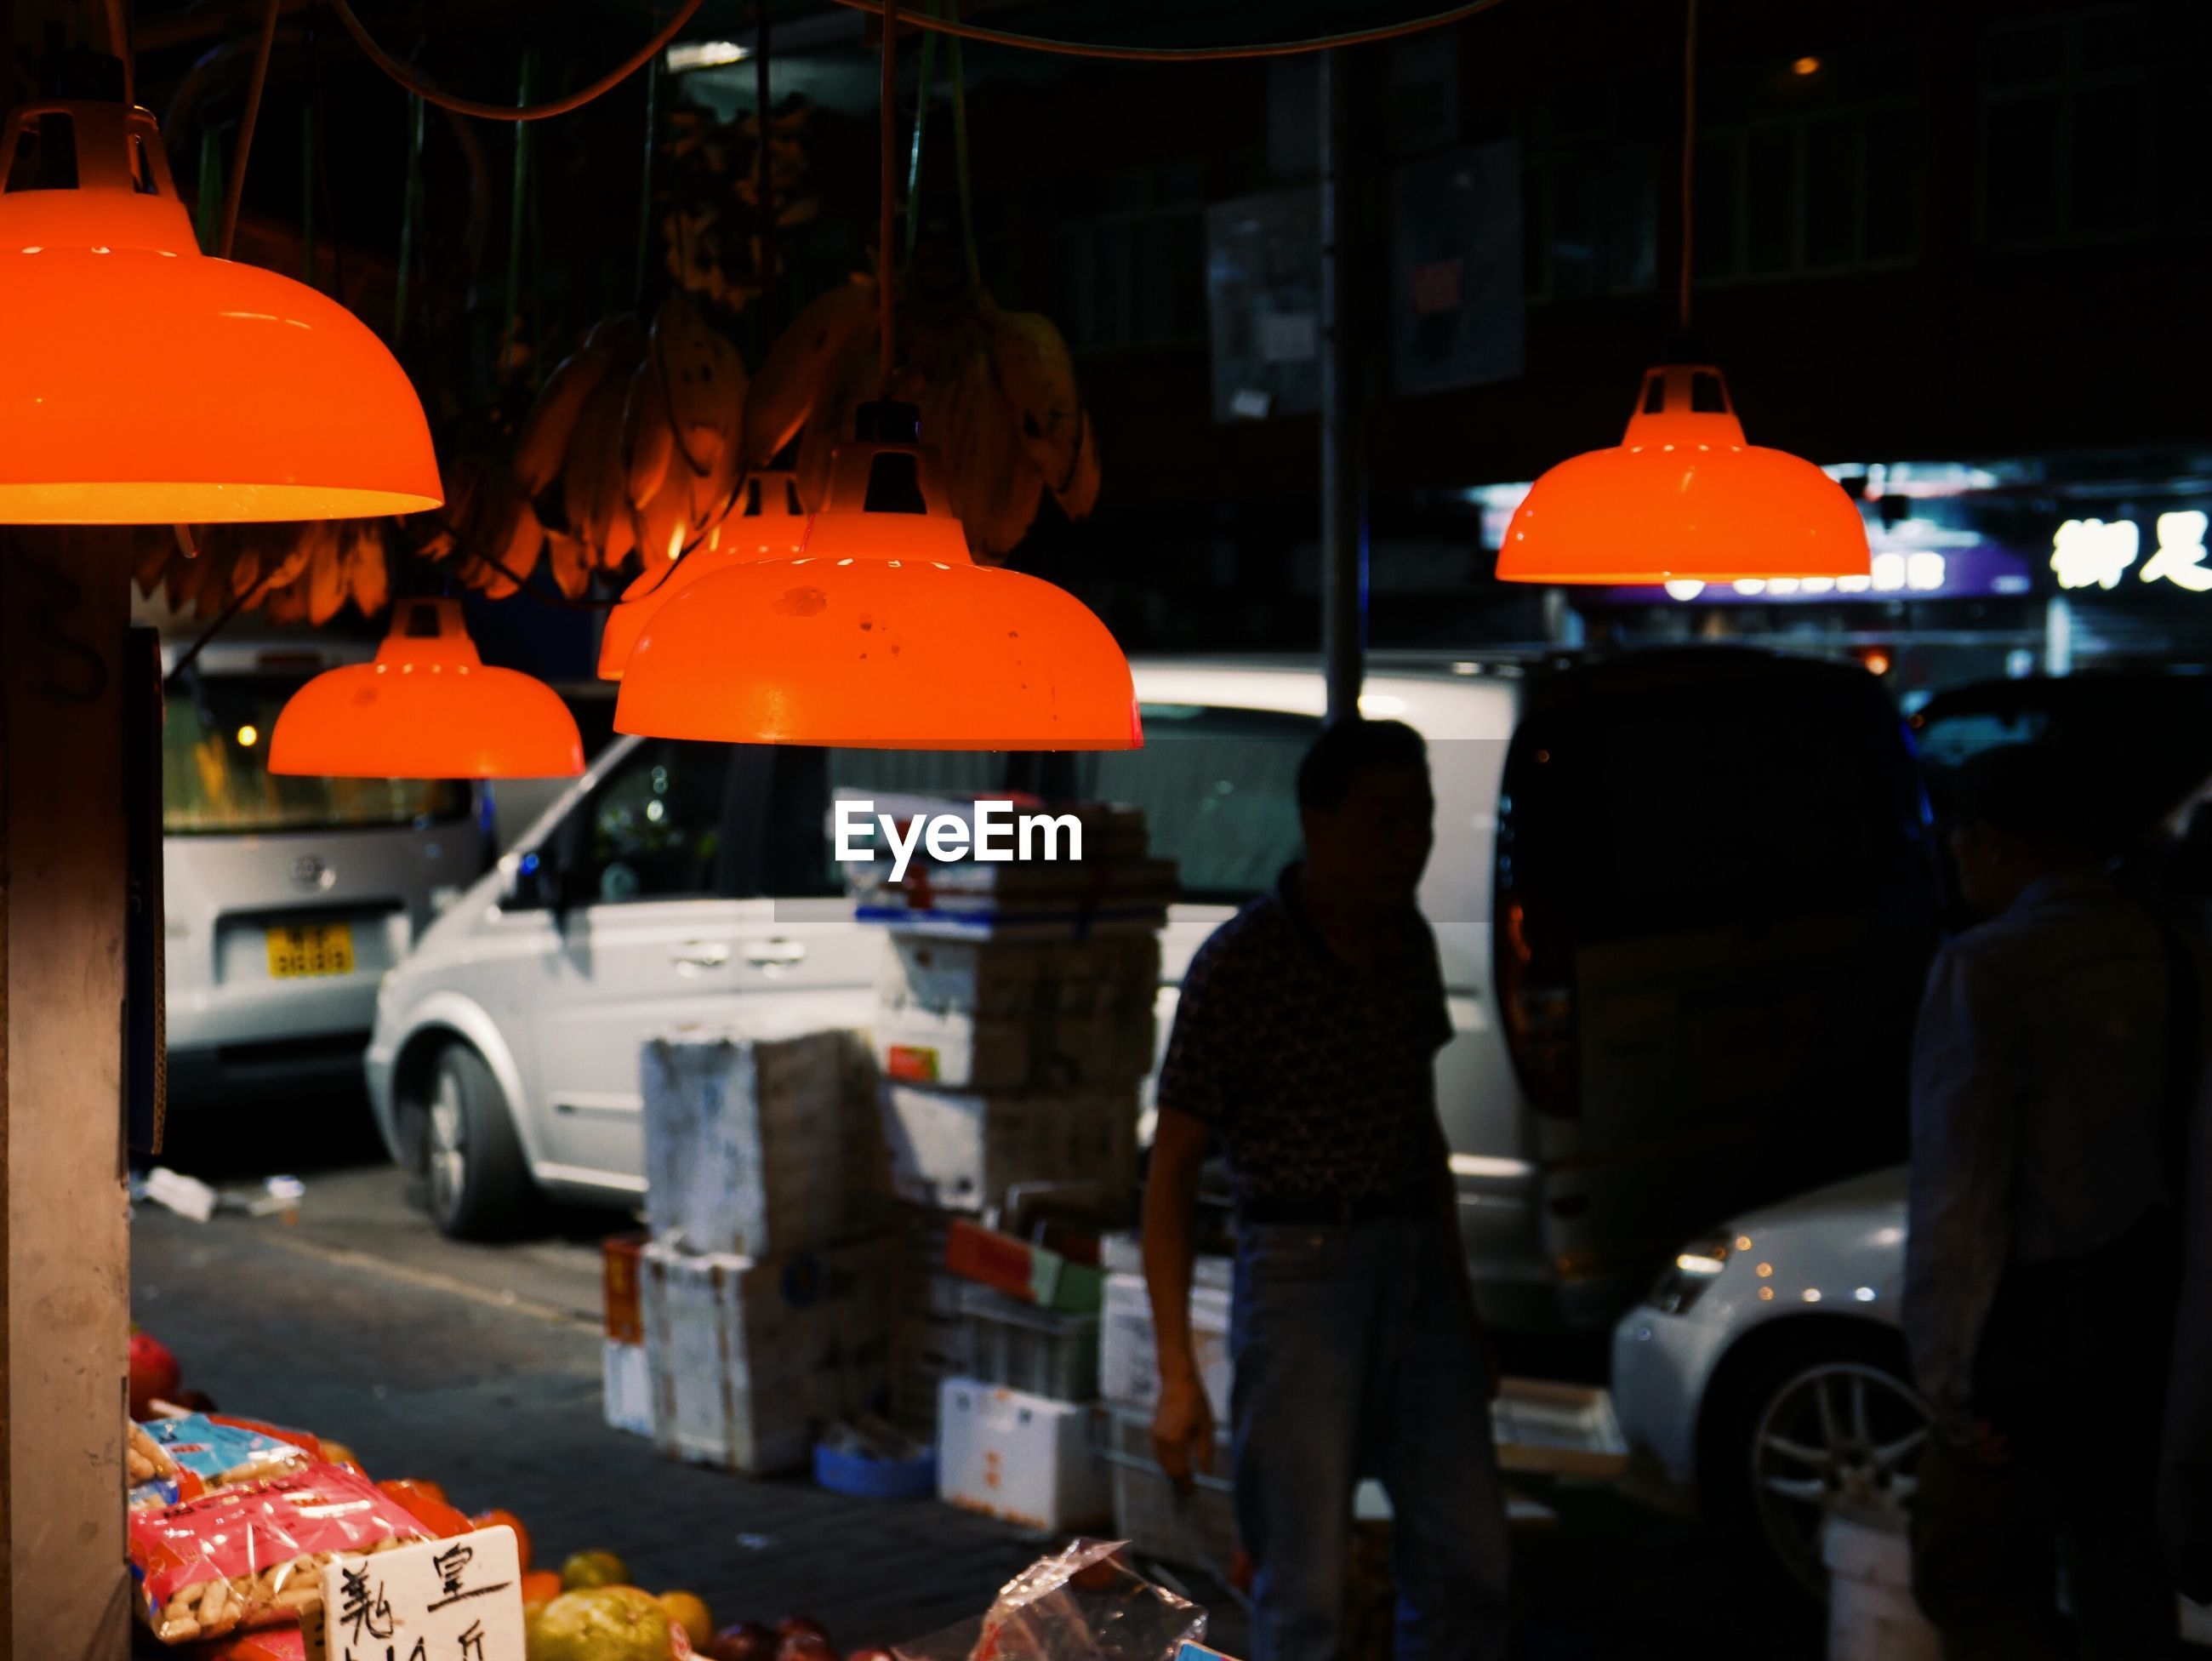 mode of transportation, transportation, motor vehicle, car, city, street, real people, land vehicle, men, orange color, architecture, road, people, group of people, standing, occupation, illuminated, incidental people, city street, focus on foreground